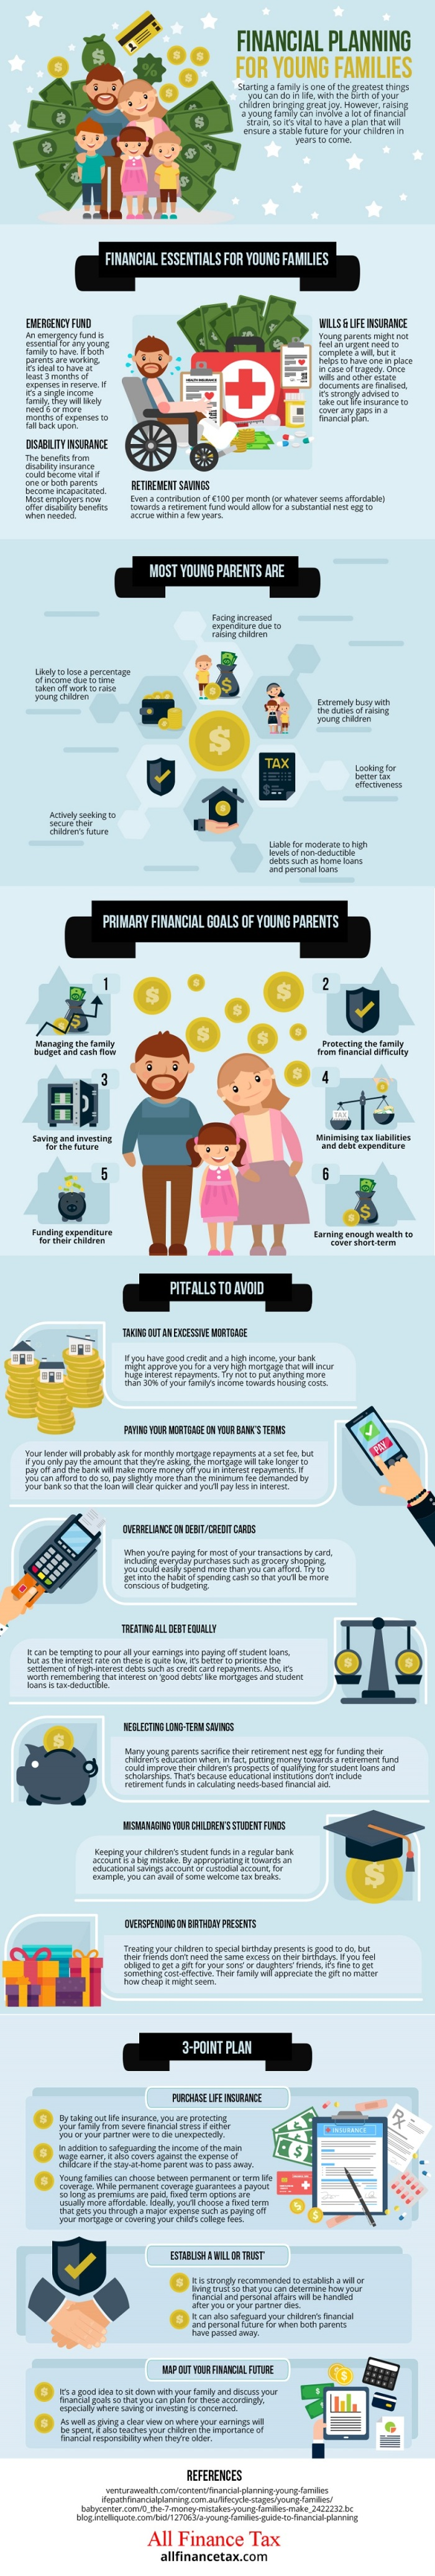 financial-planning-for-young-families-infographic.jpg